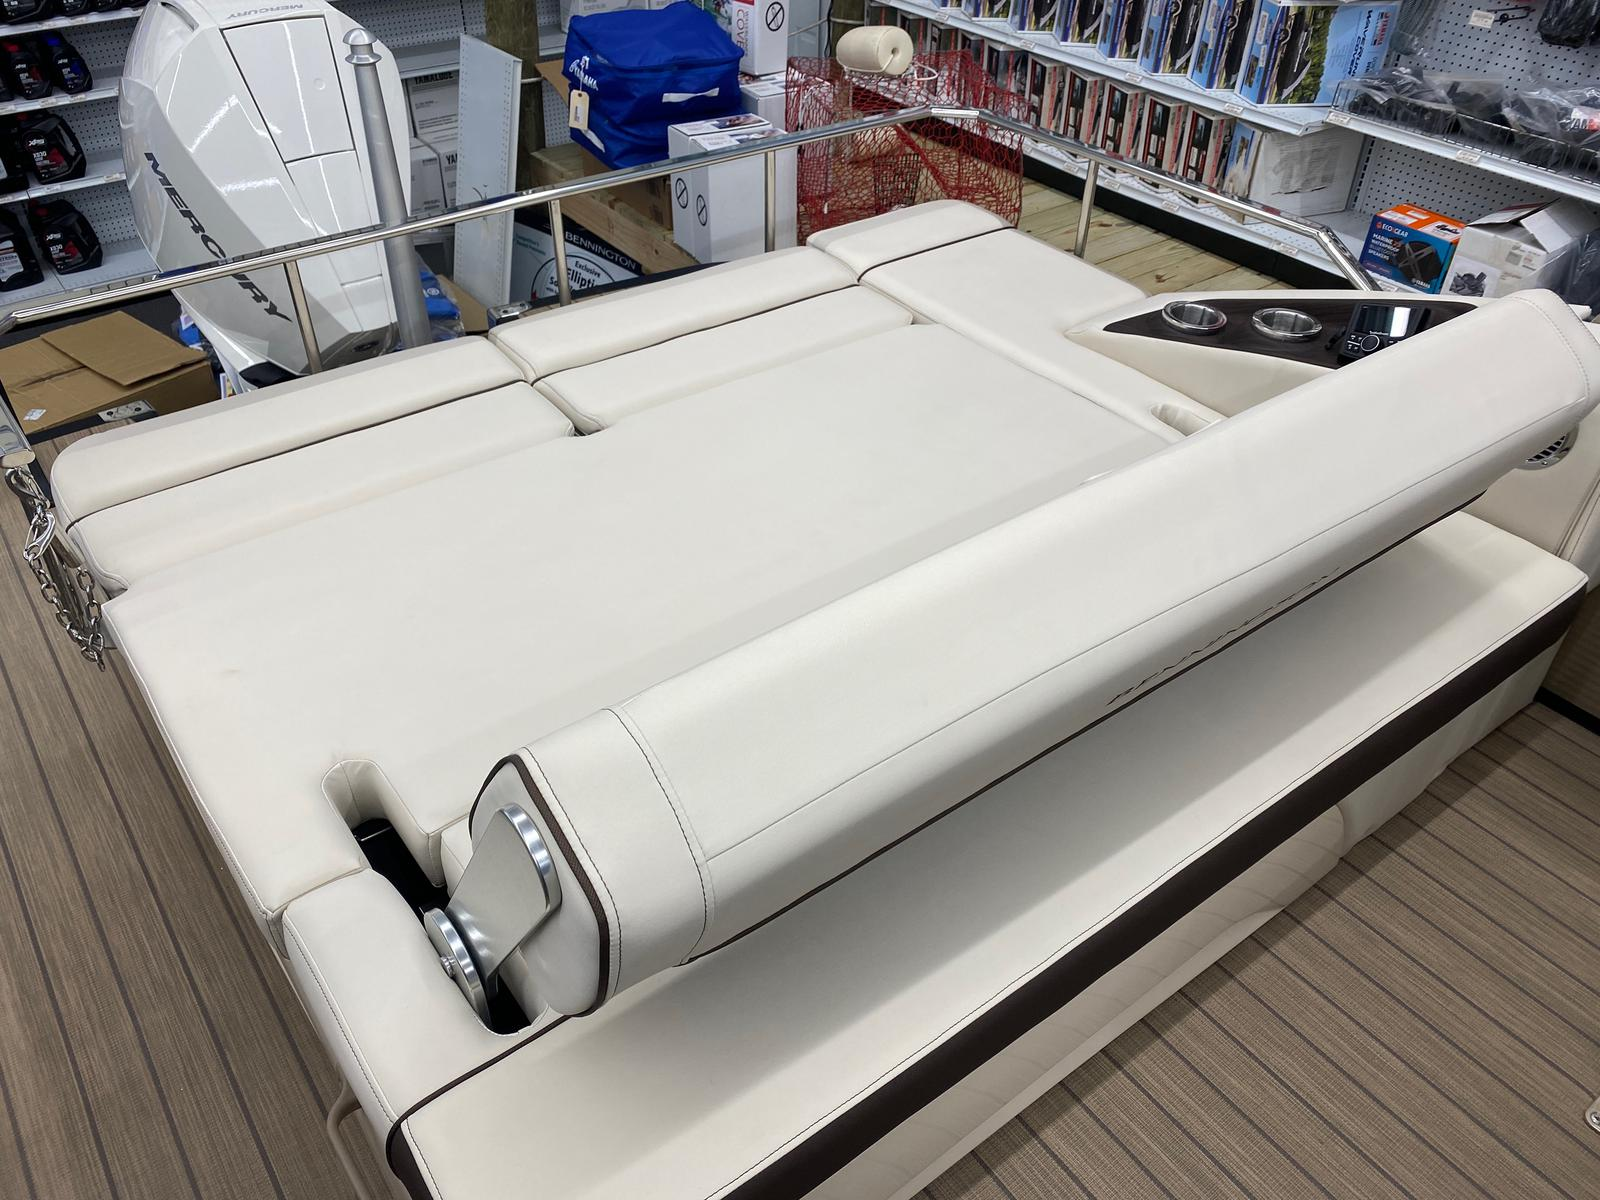 2021 Bennington boat for sale, model of the boat is 23 RSBWA WSHLD DLX Fold Open SP Arch Tri-Toon ESP Package & Image # 20 of 25